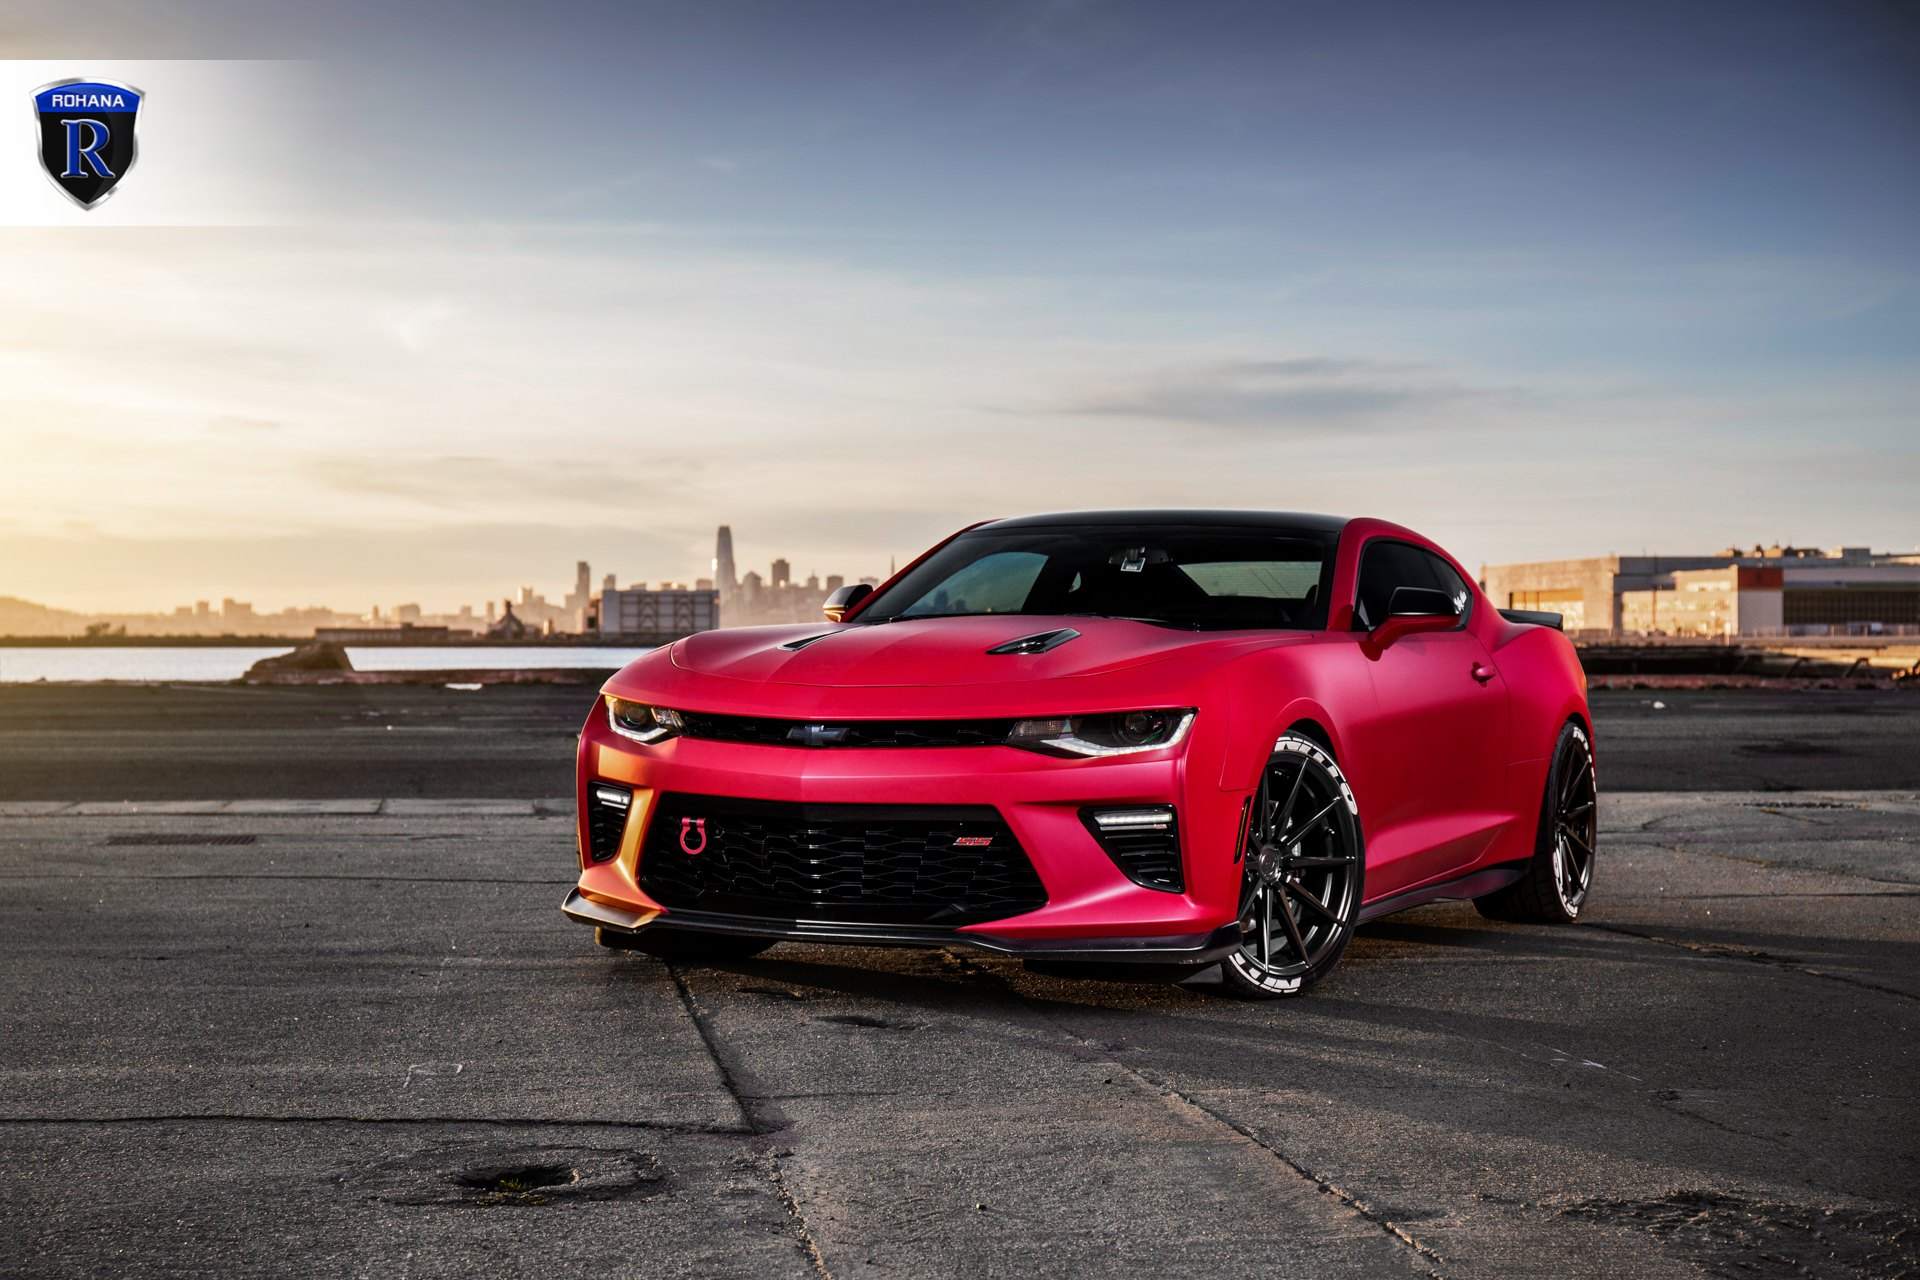 Custom Red Chevy Camaro SS with Nitto Tires - Photo by Rohana